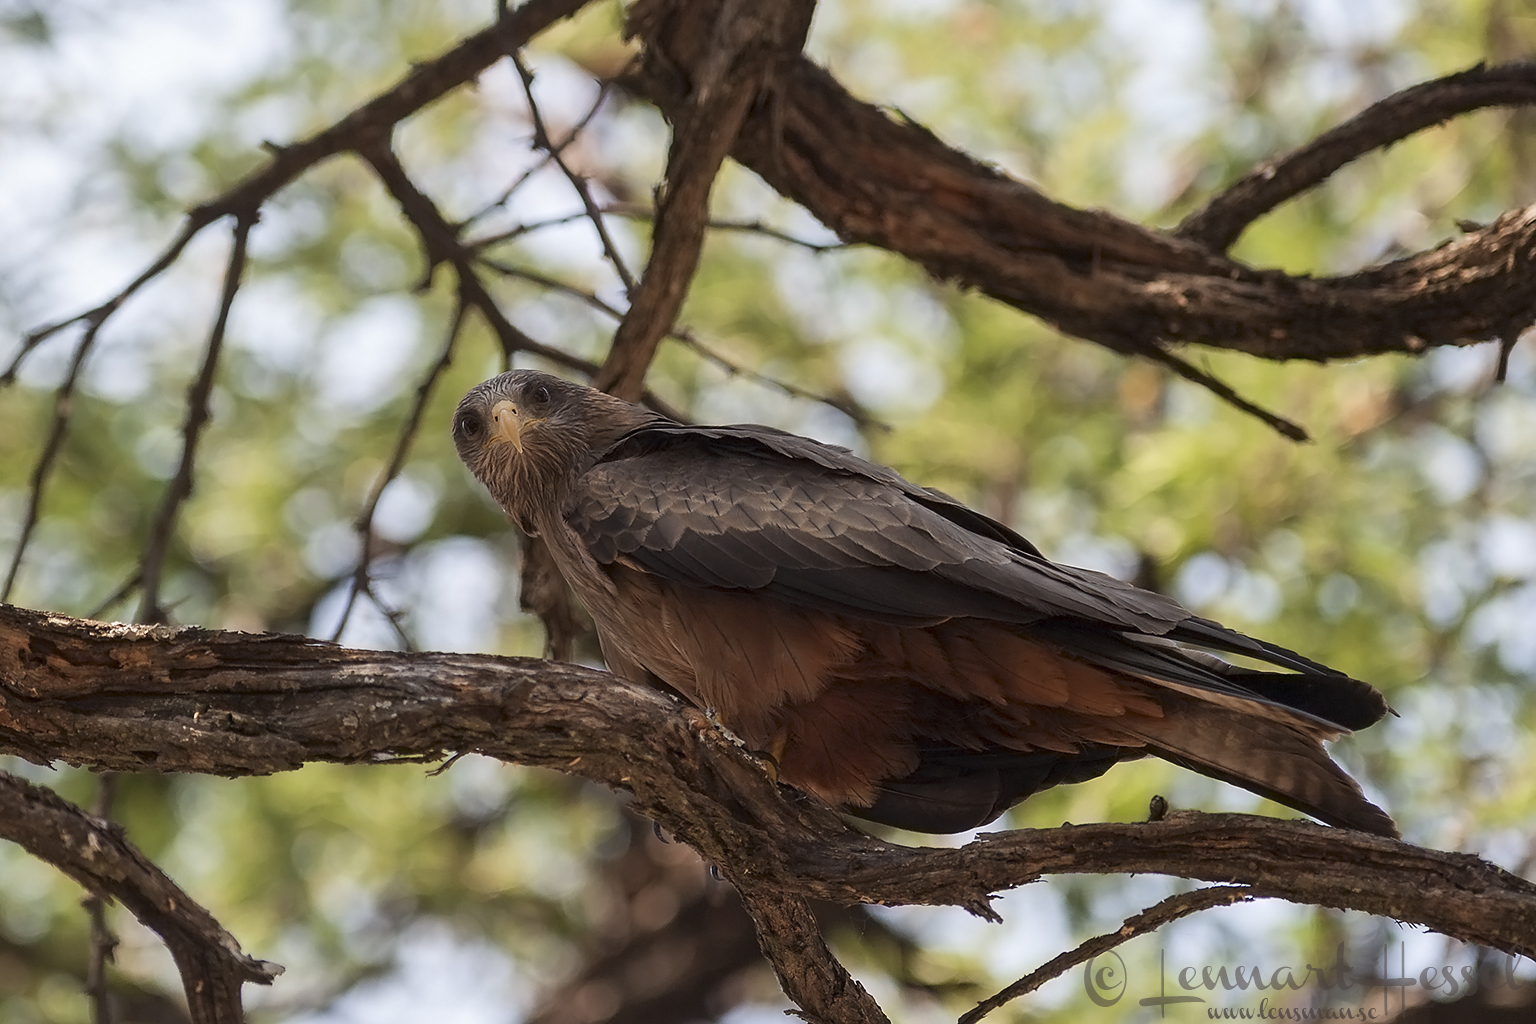 Yellow-billed Kite in Khwai Community Area, Botswana